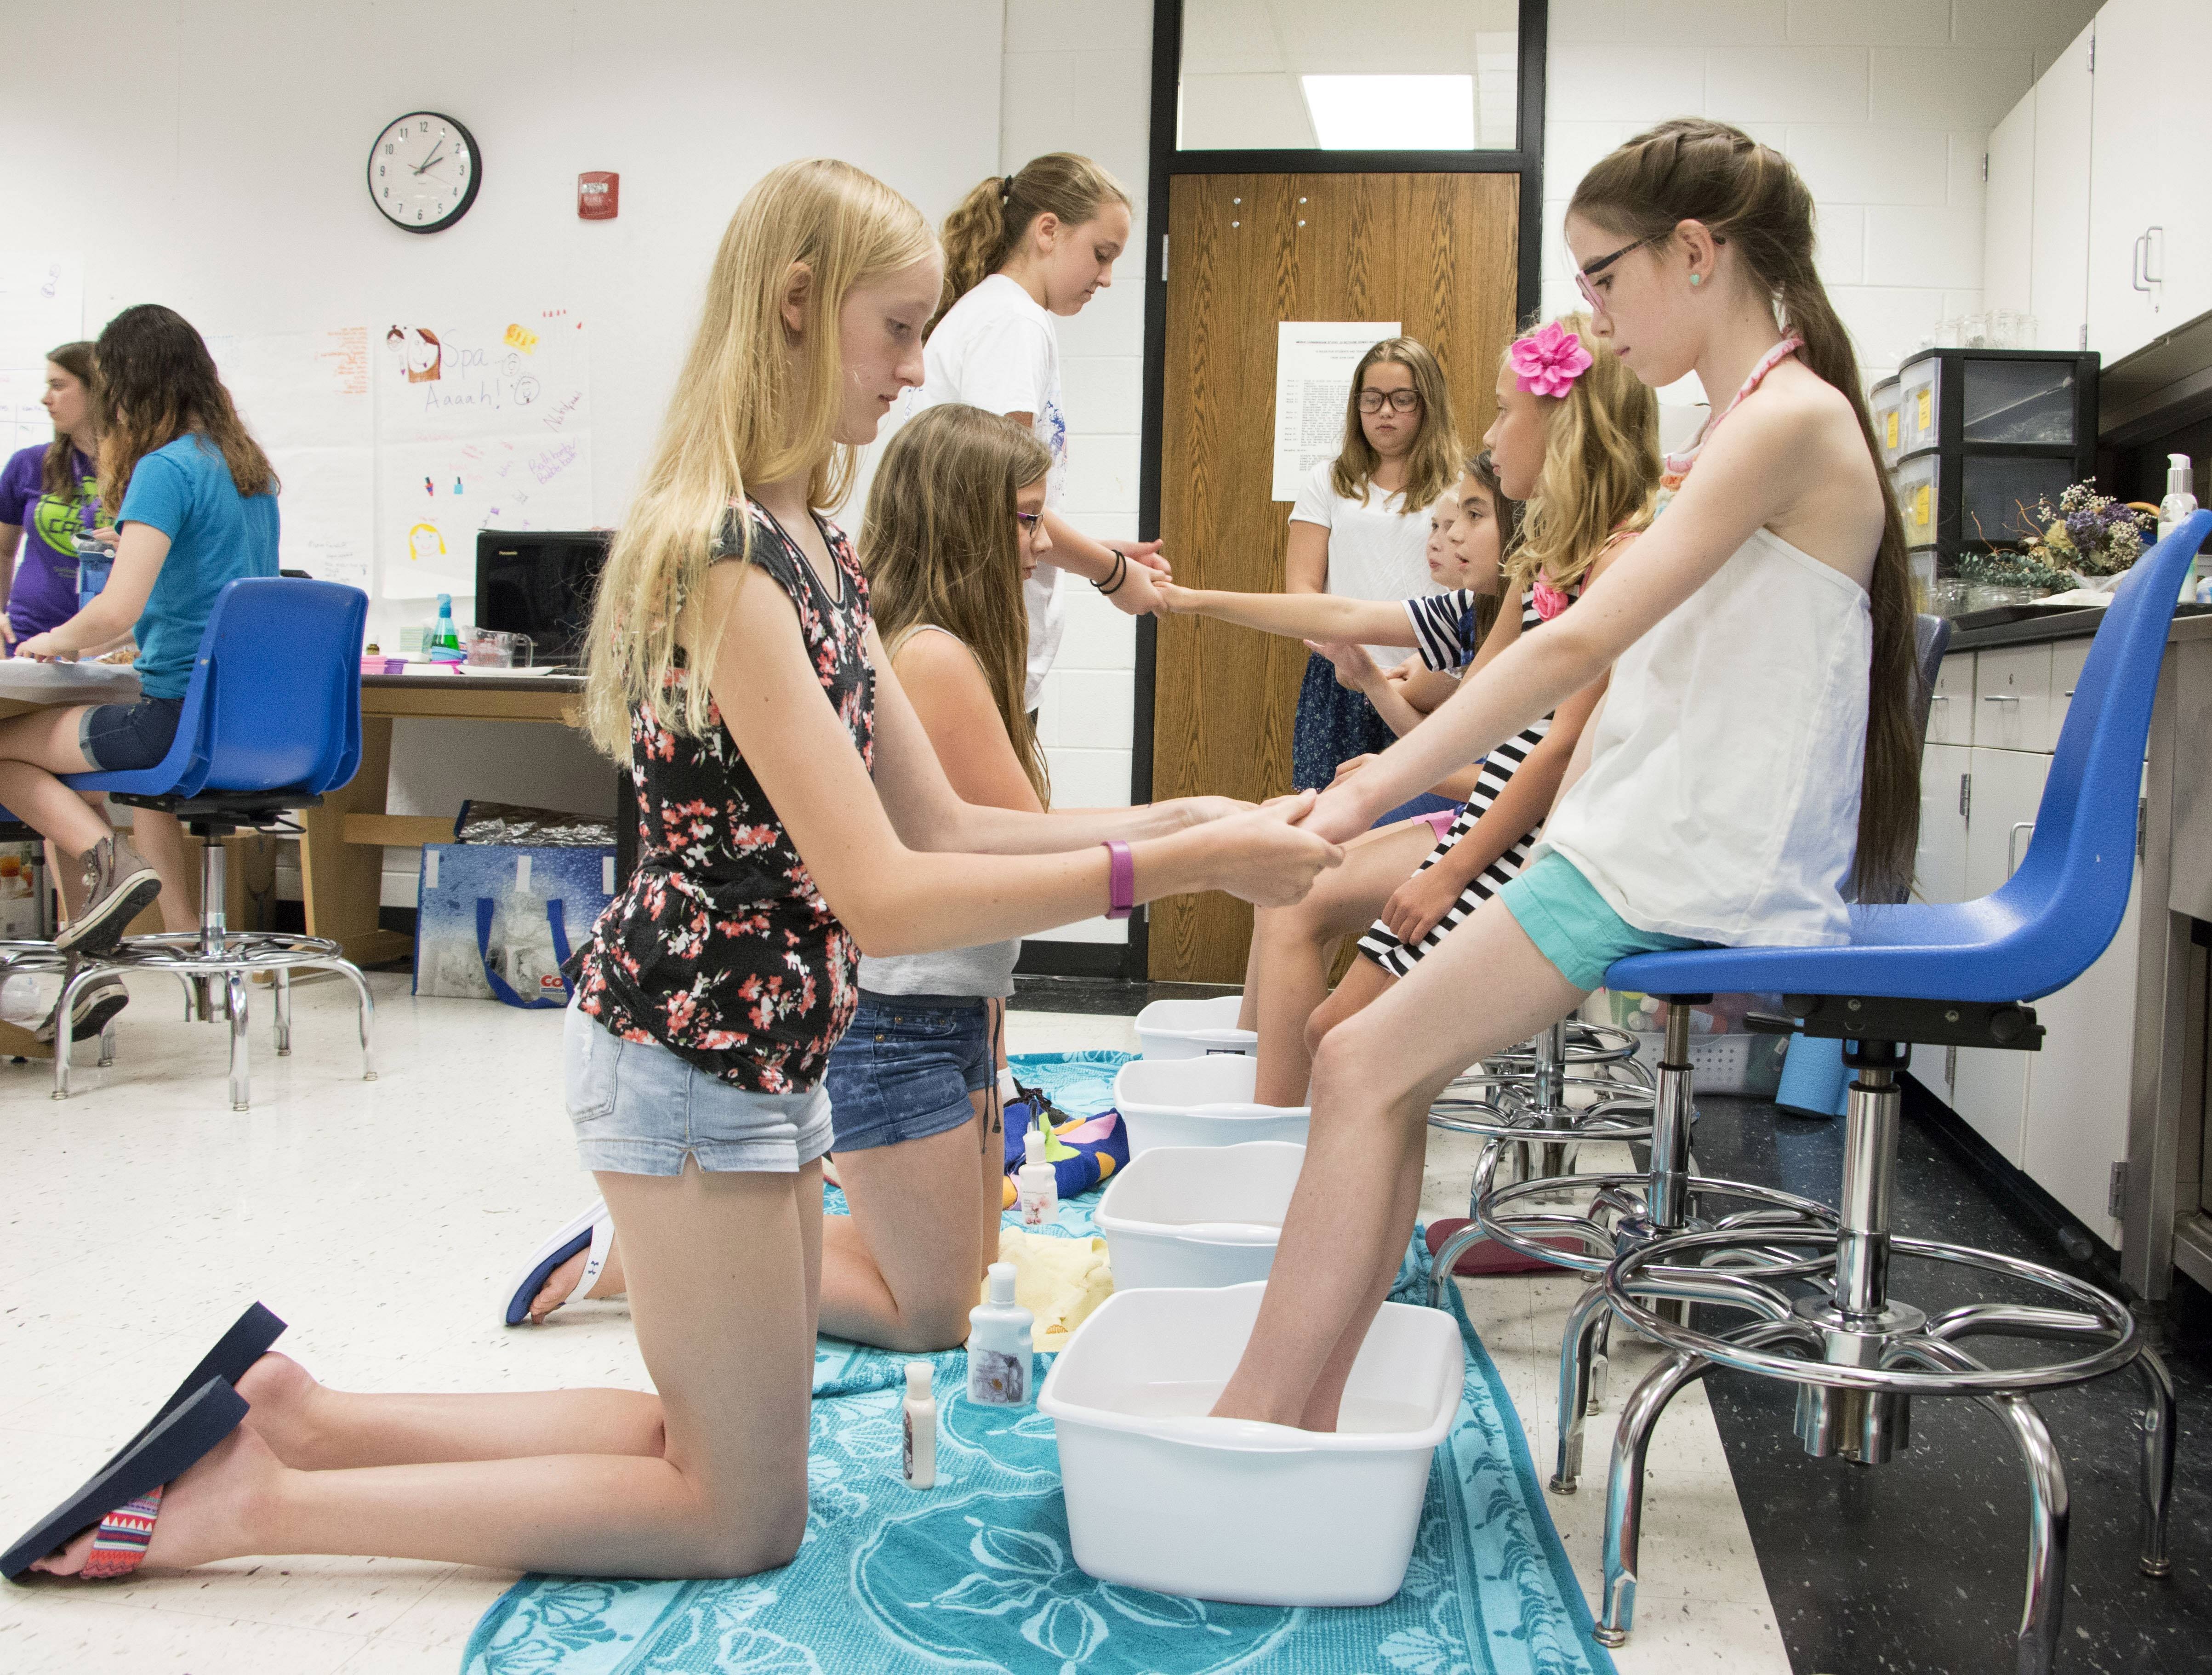 Lauren Courtney, 13, of Lake in the Hills, massages the hand of Miabella Carzoli, 10, of Woodstock, during their Spa Science class as a practice run for the Ultimate Spa Experience the students created for their guests the next day. The class is part of the Kids and College summer program at McHenry County College.